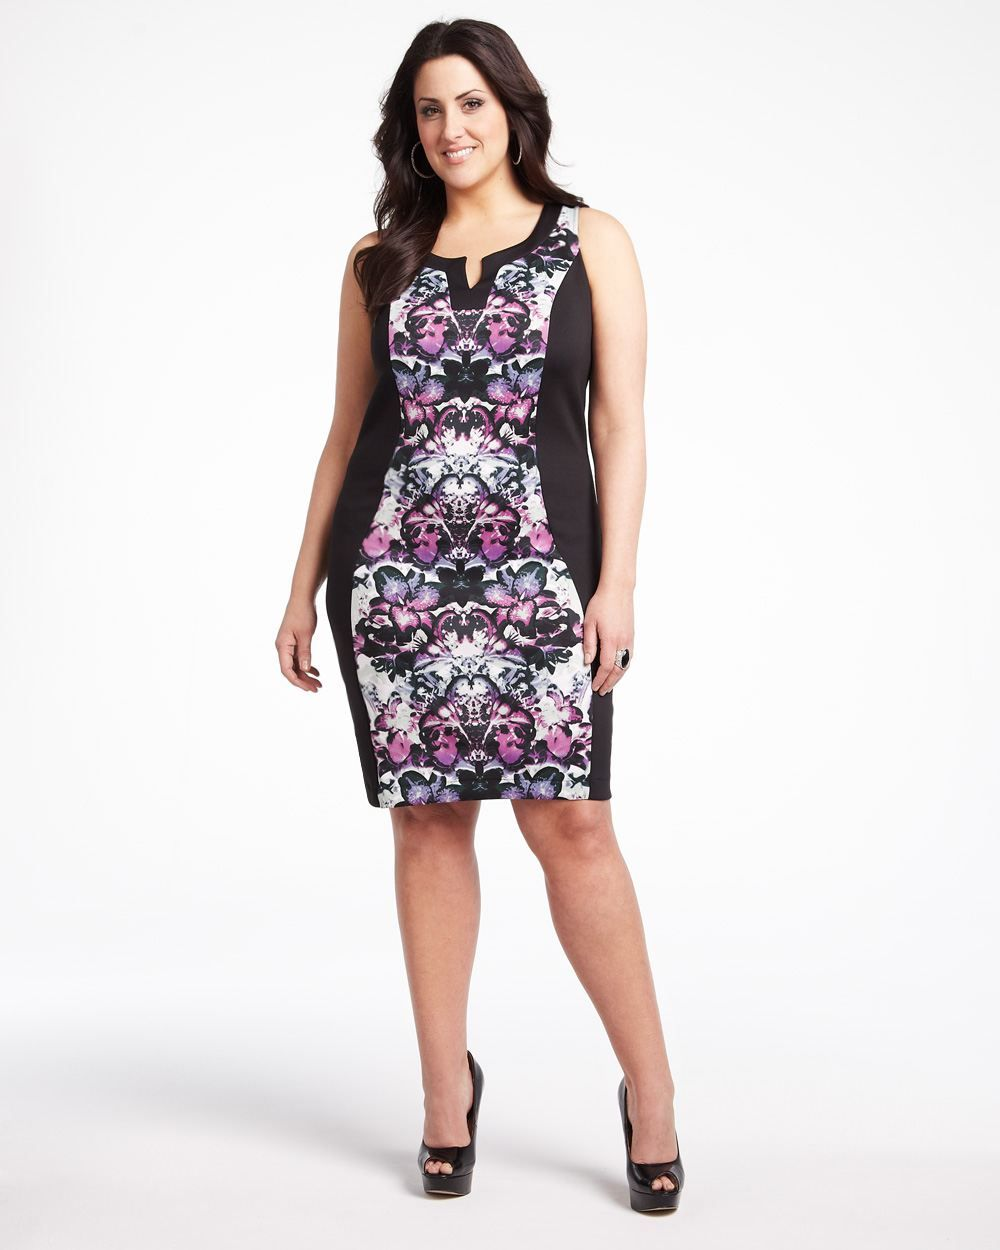 Dresses For Plus Size Women that people fashionable - http://www ...